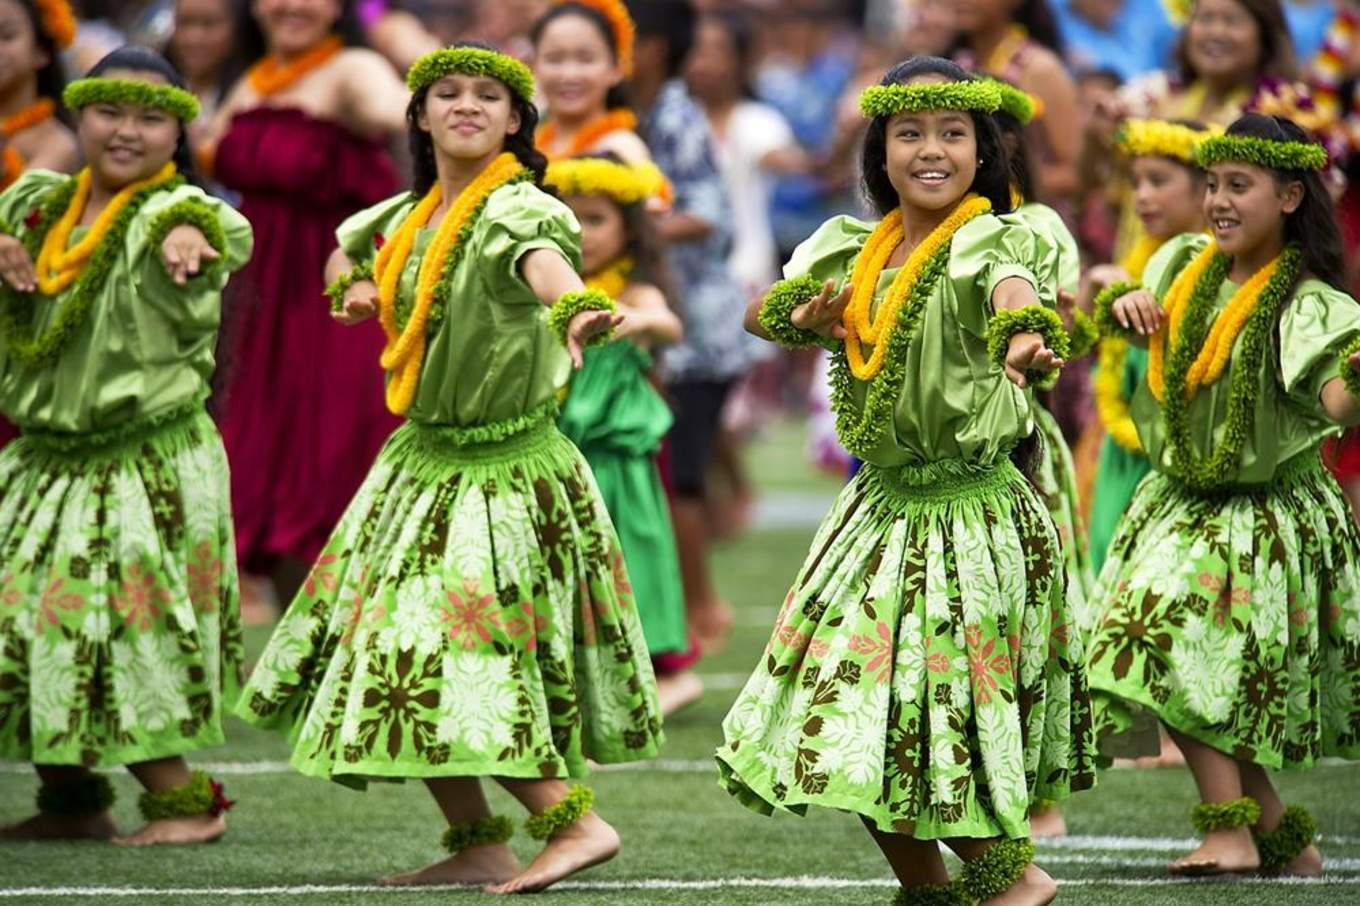 hawaiian hula dancers 377653 1280